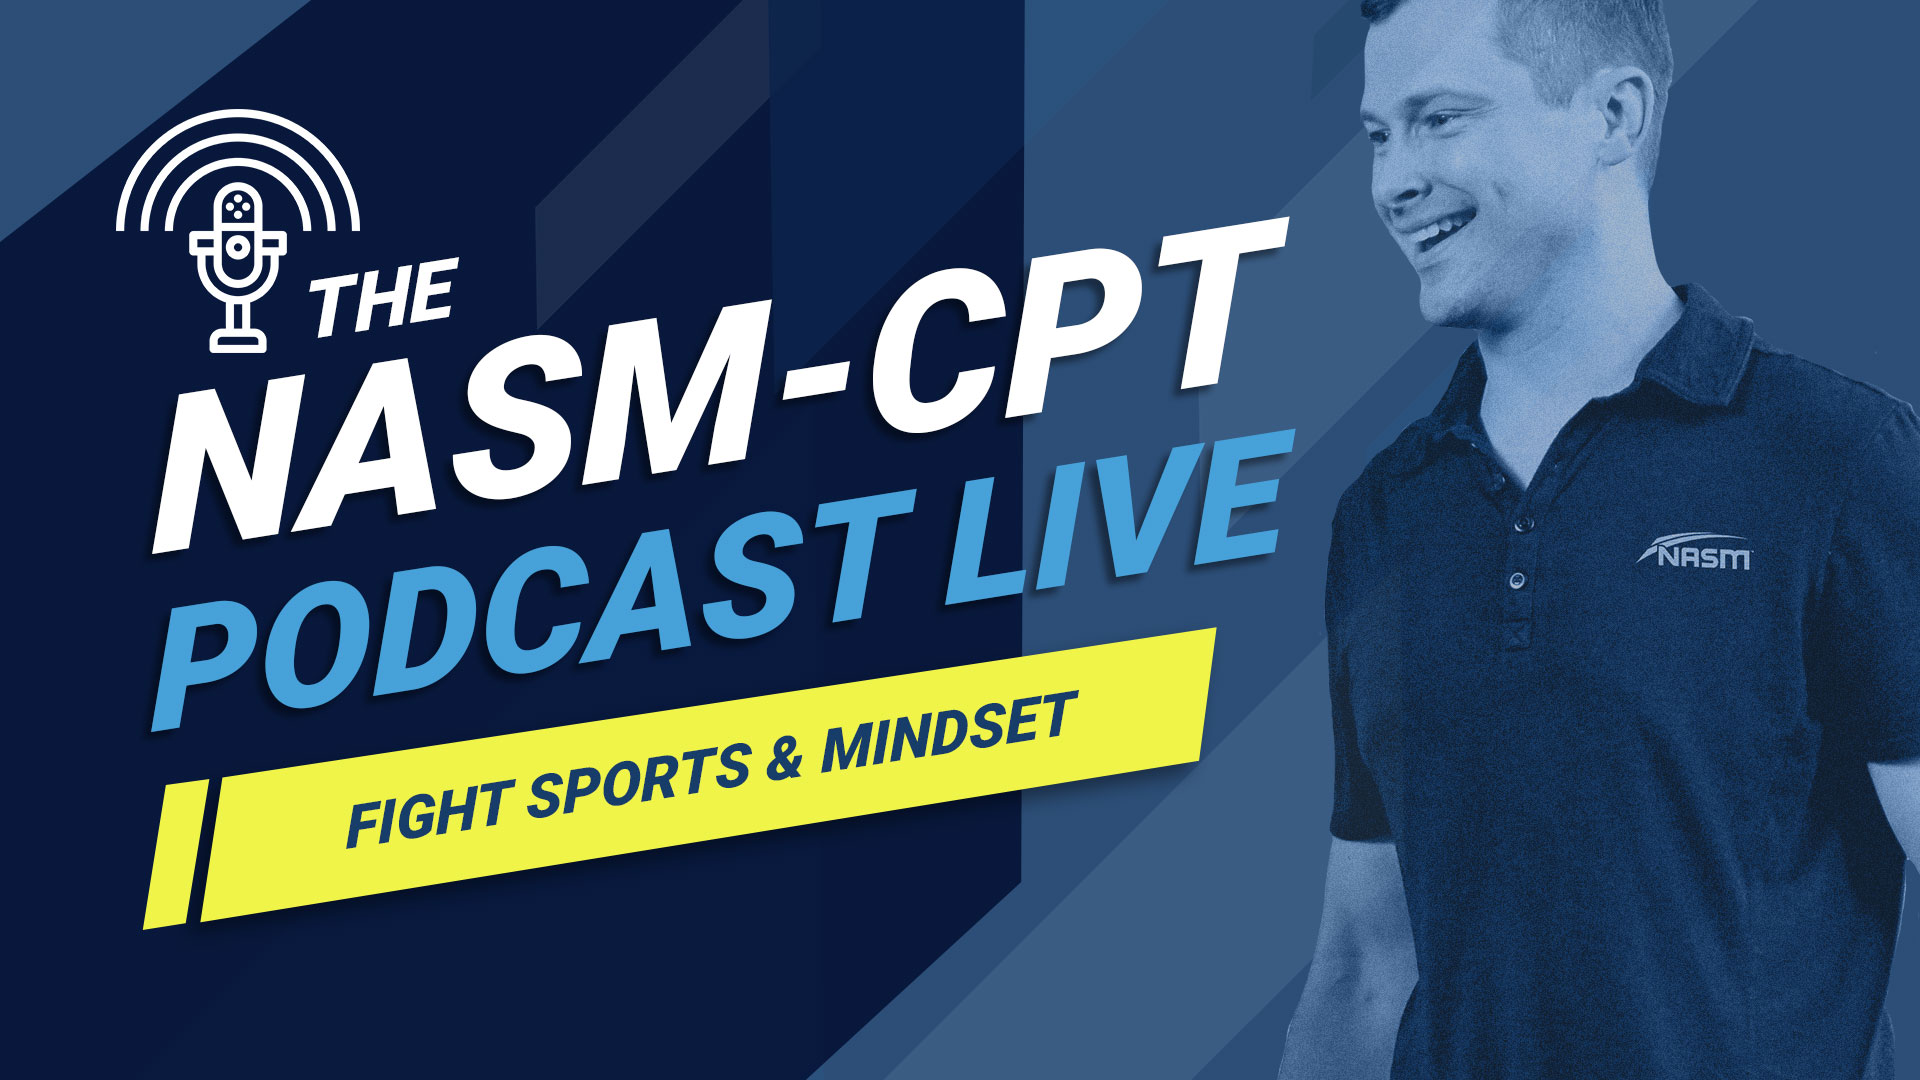 fight sports episode banner for 150store CPT podcast